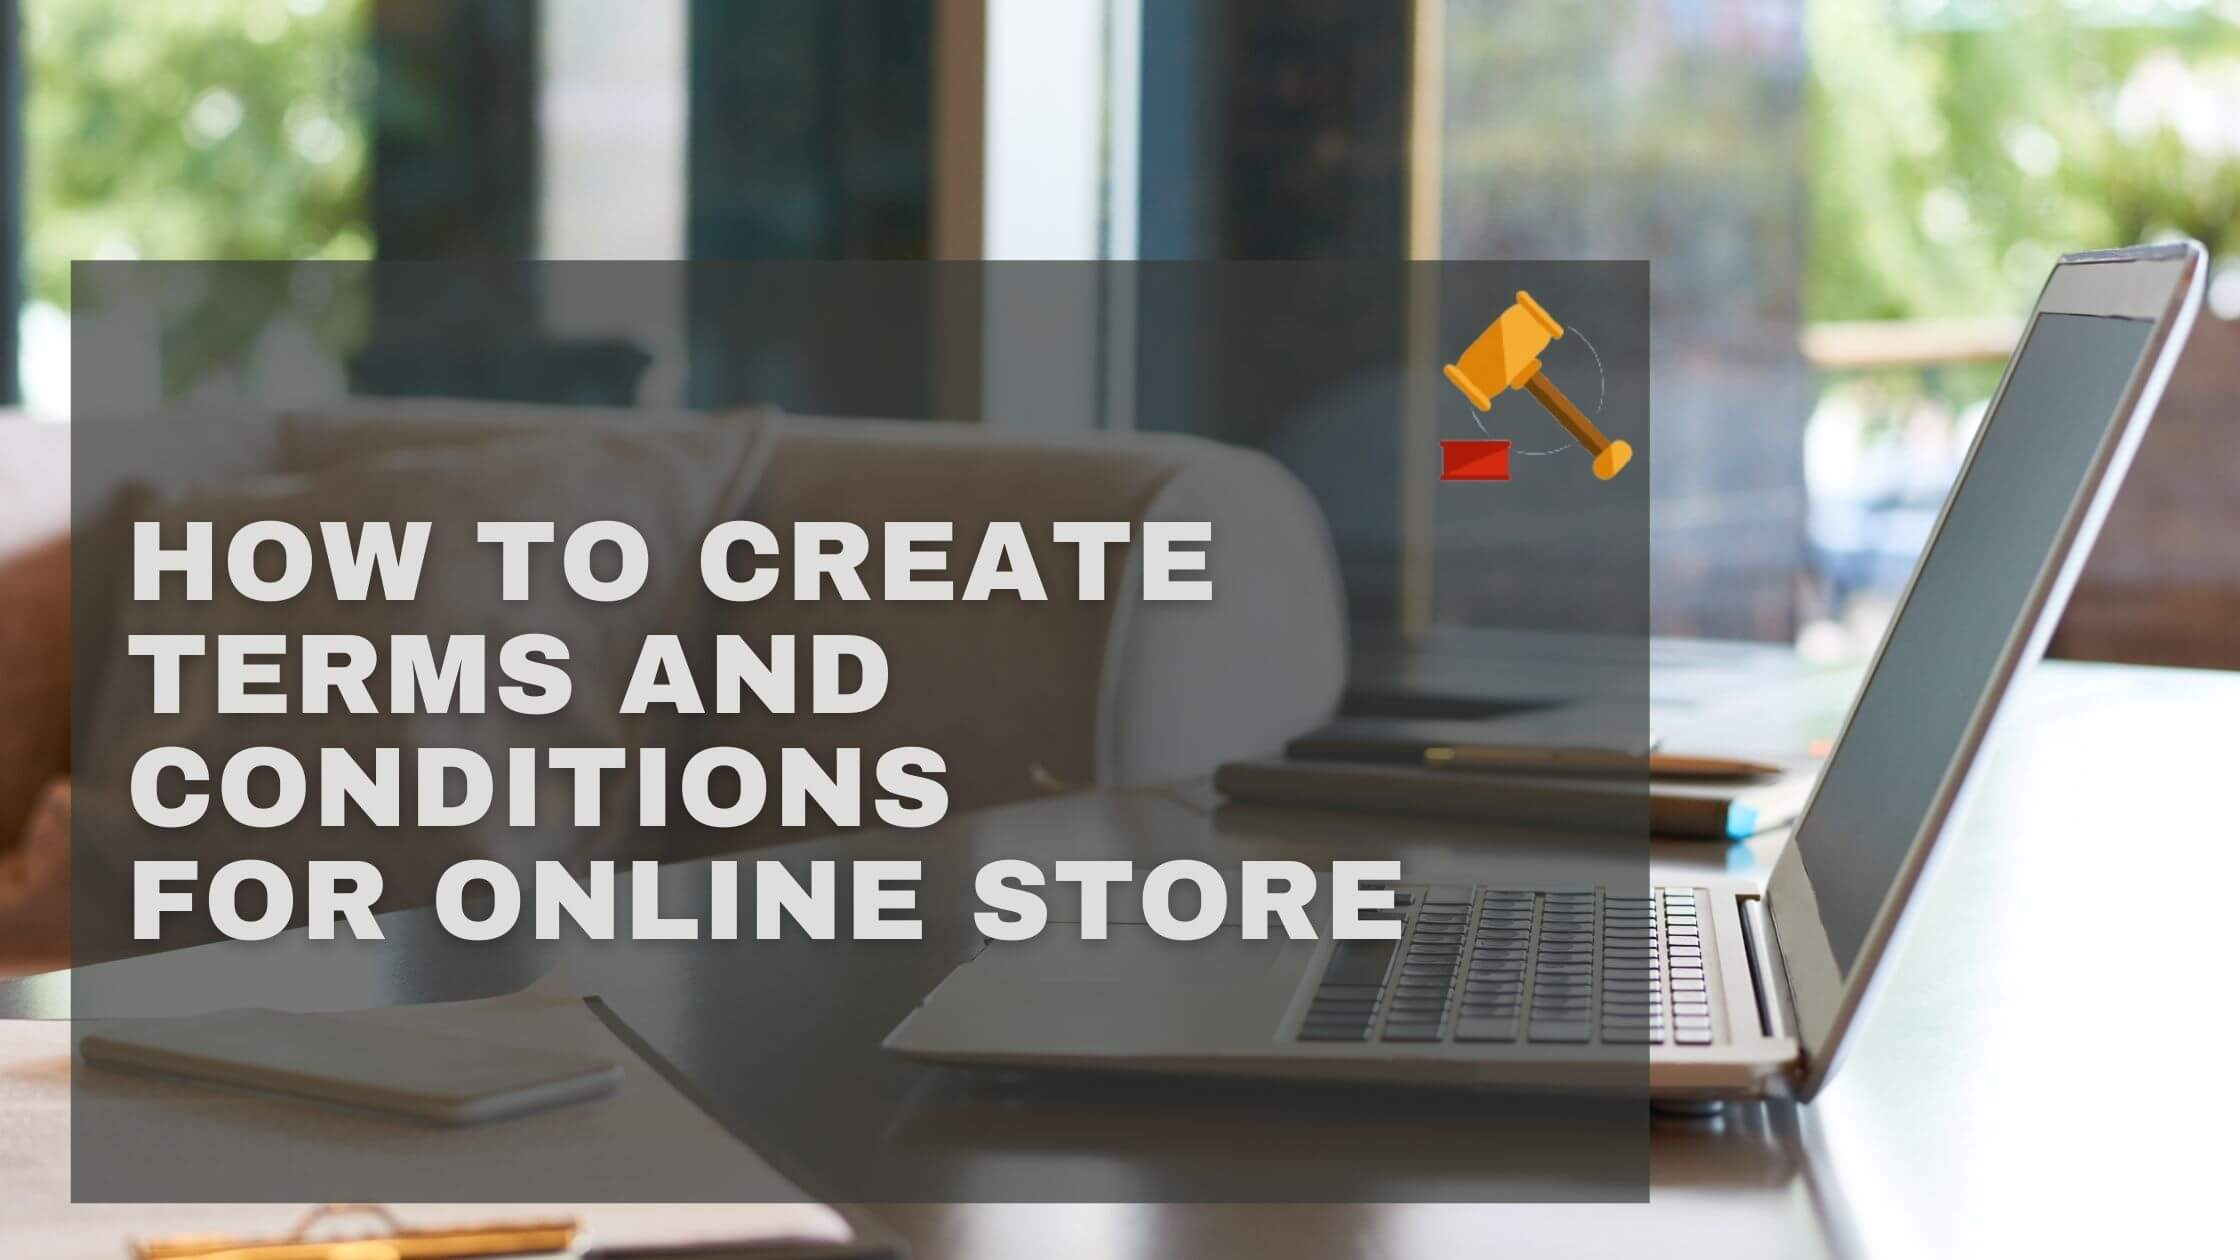 How to create terms and conditions for online store